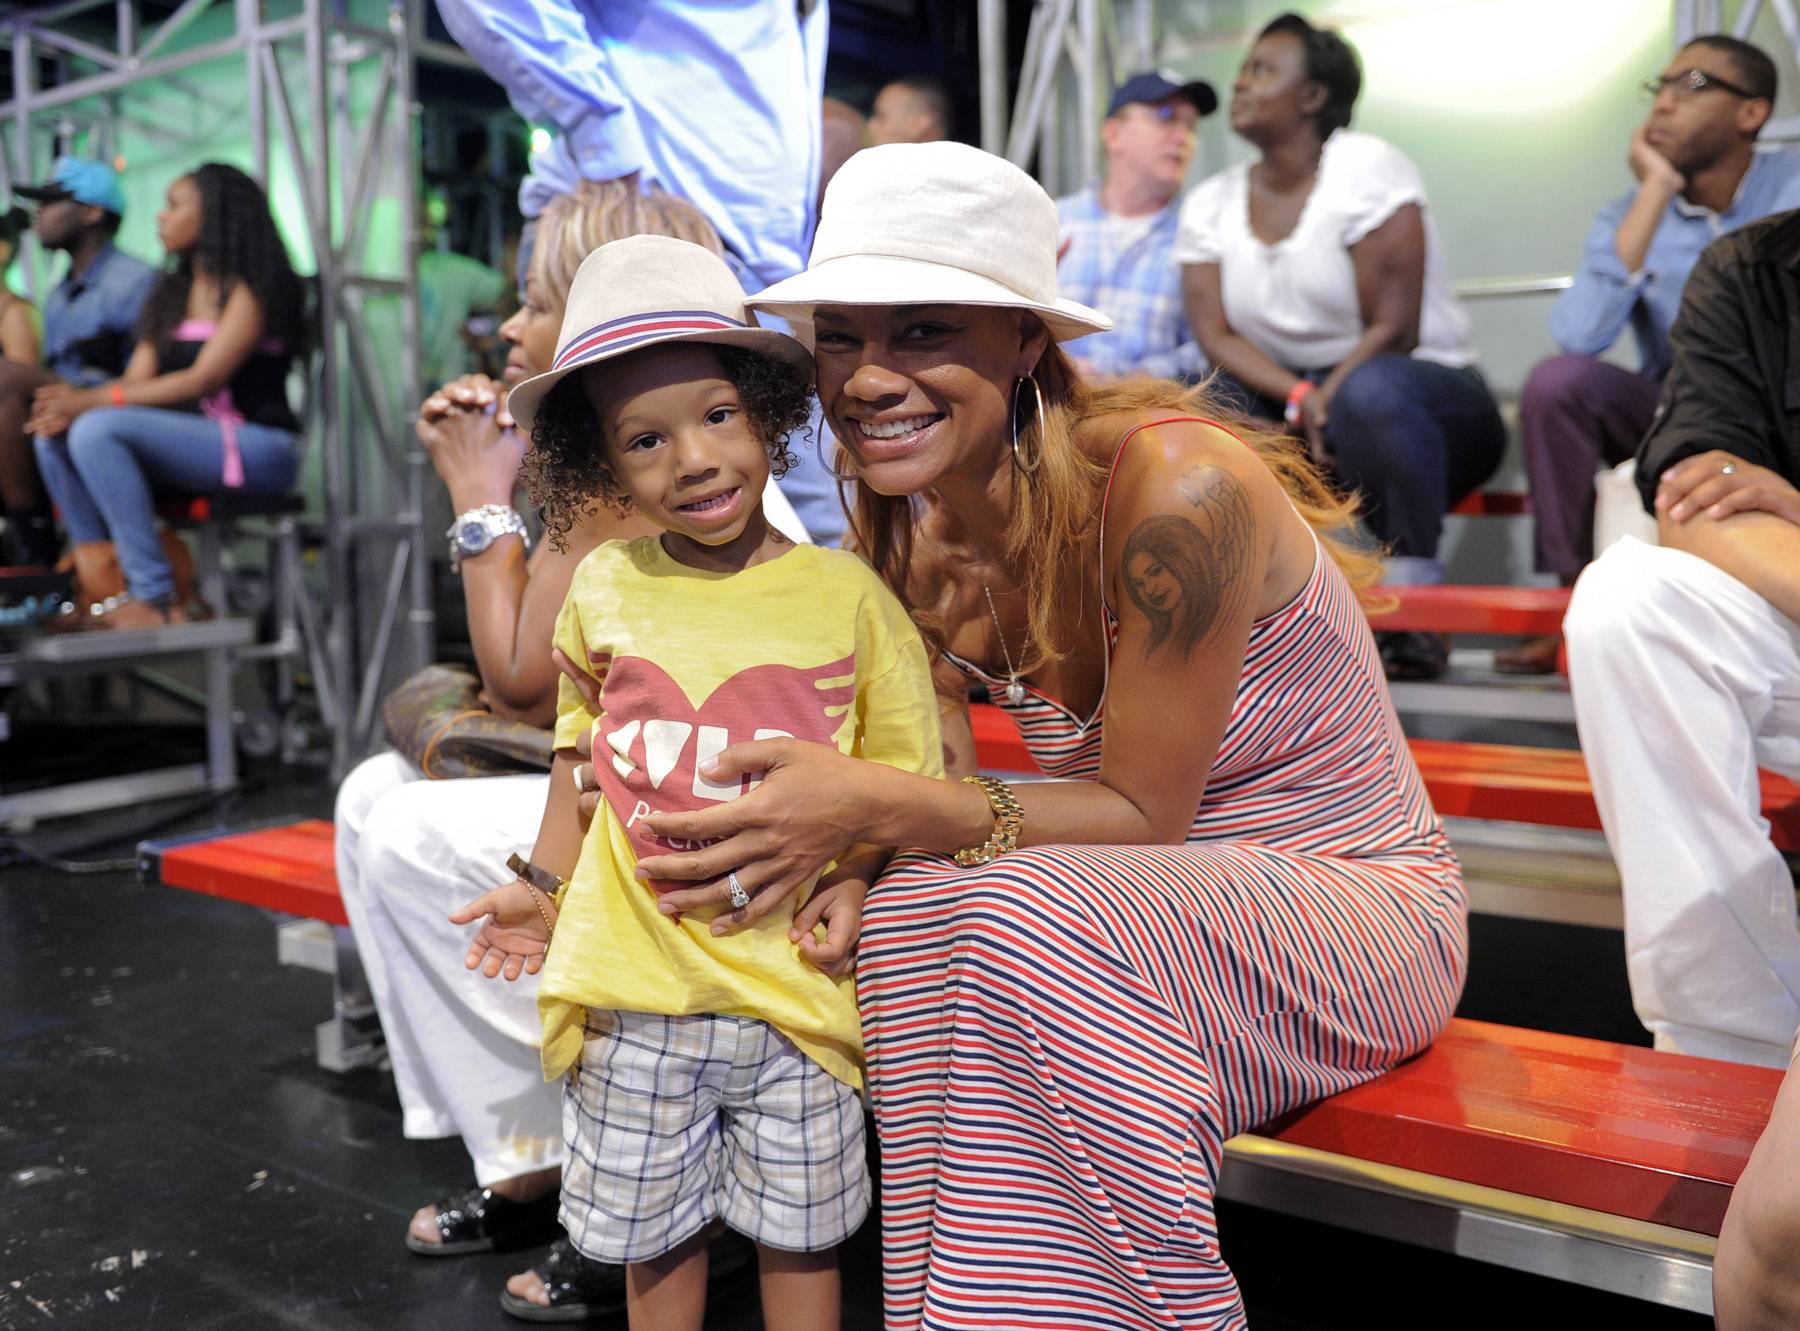 Hey Baby - Cassius Brown and Alicia Etheredge at 106 & Park, May 29, 2012. (Photo: John Ricard / BET)